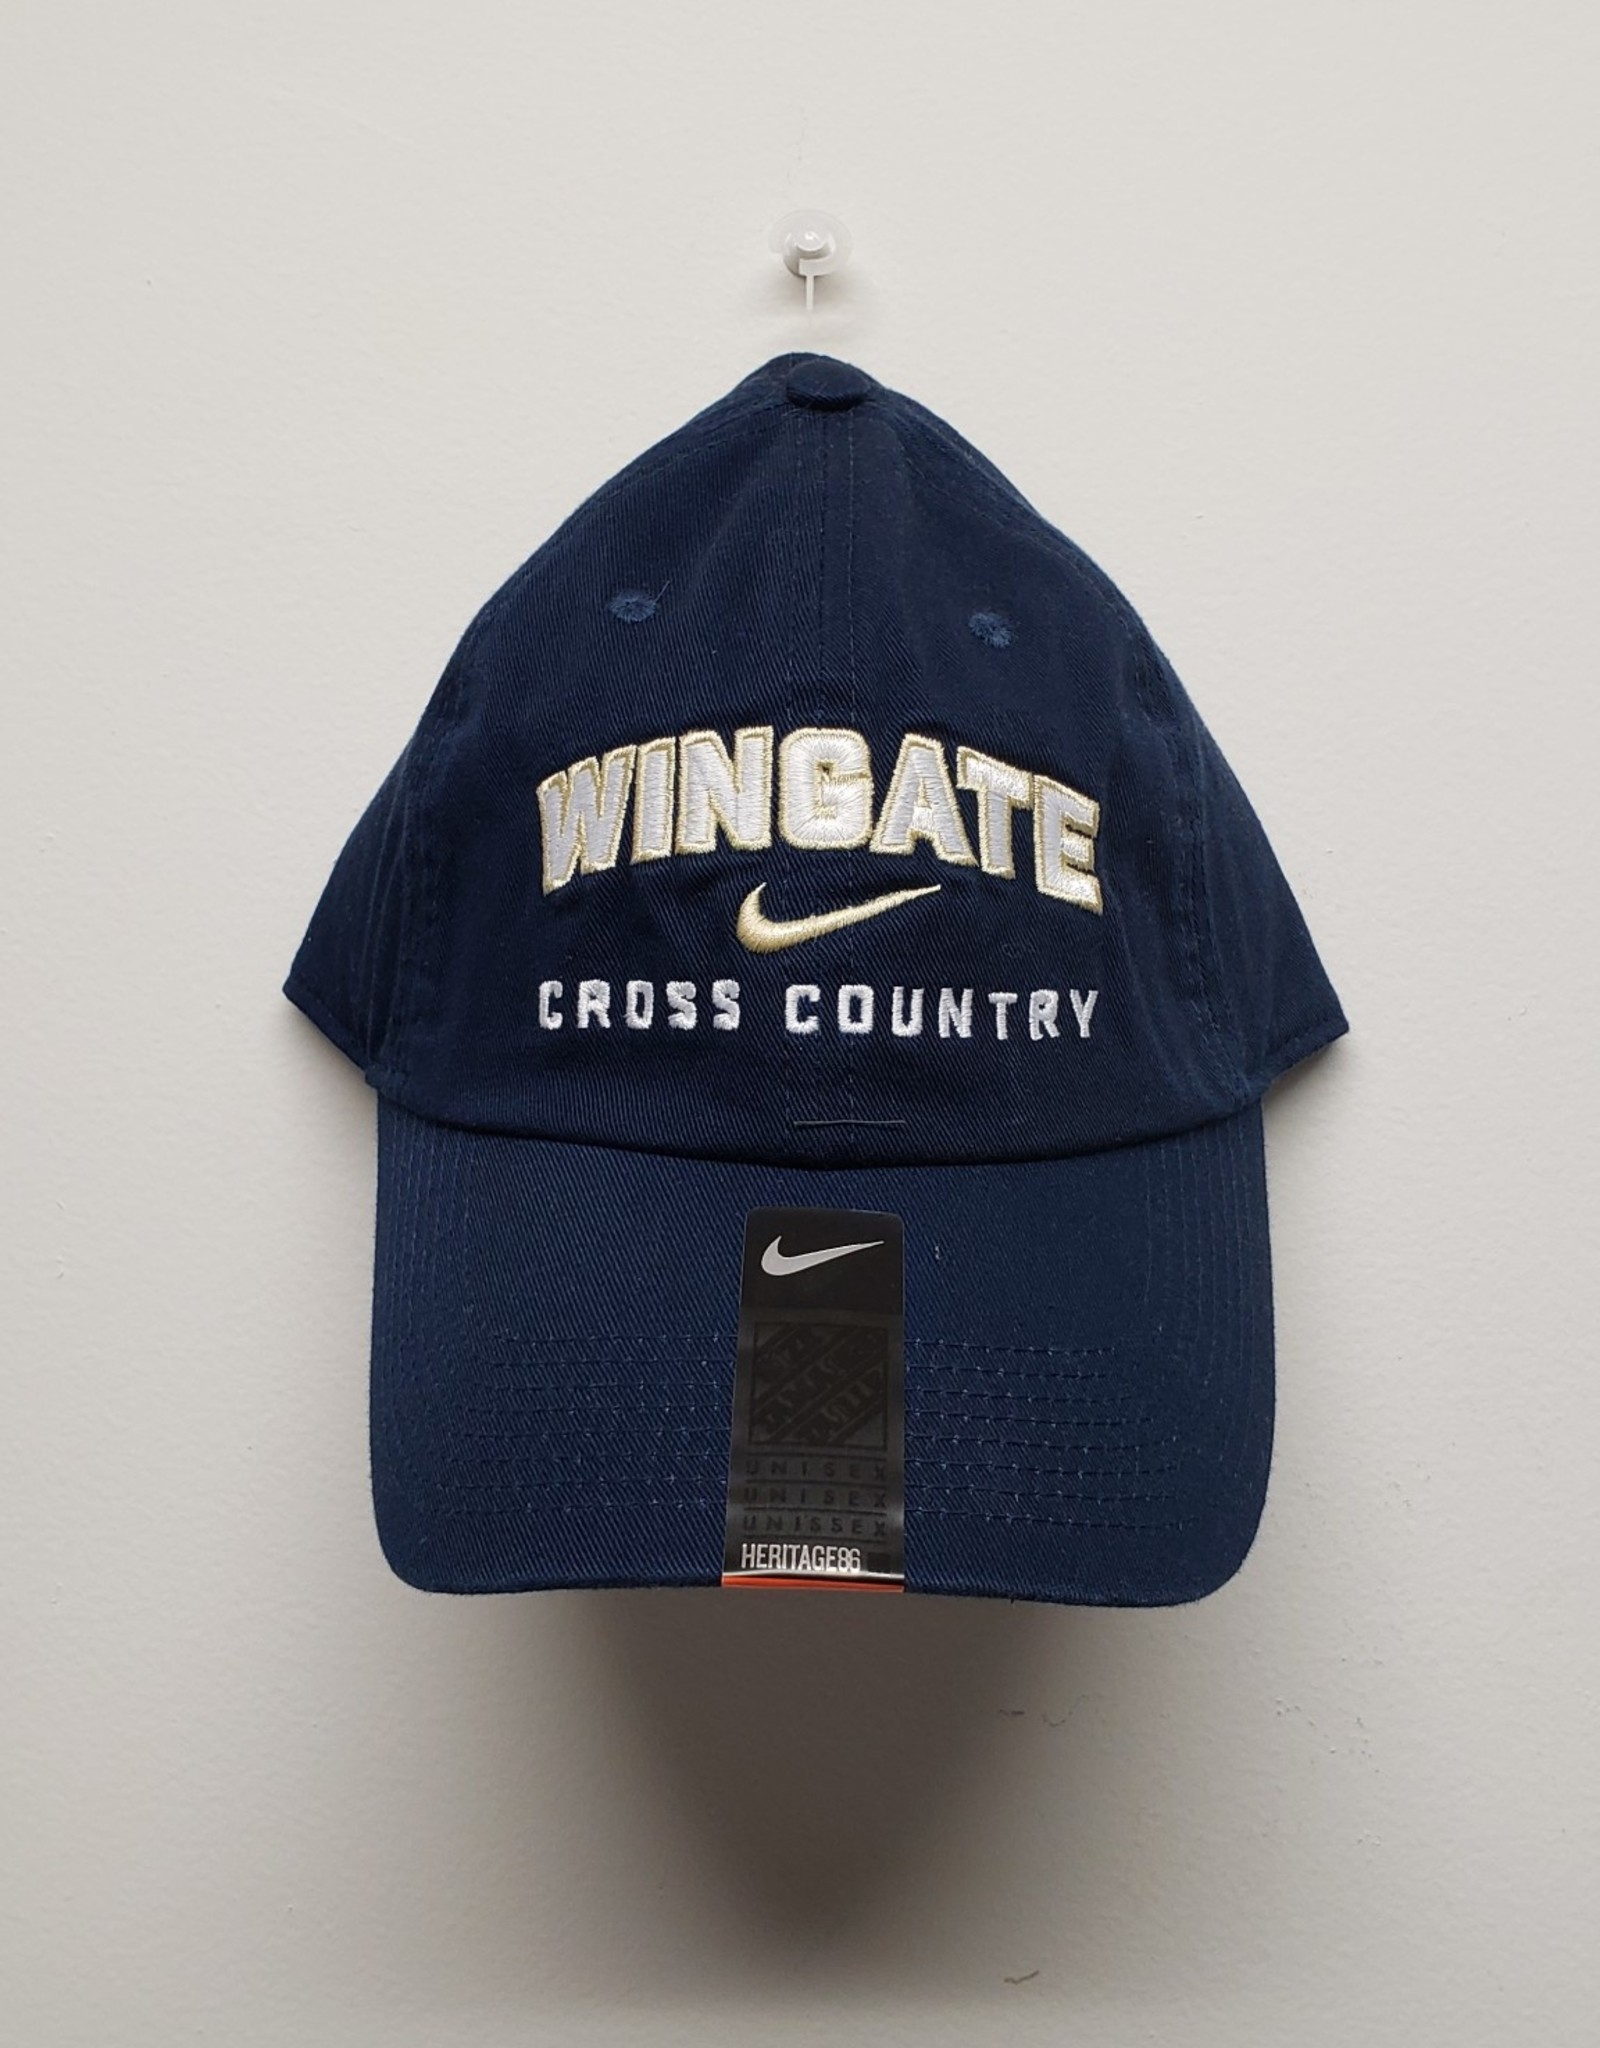 Nike Navy Cross Country Campus Hat